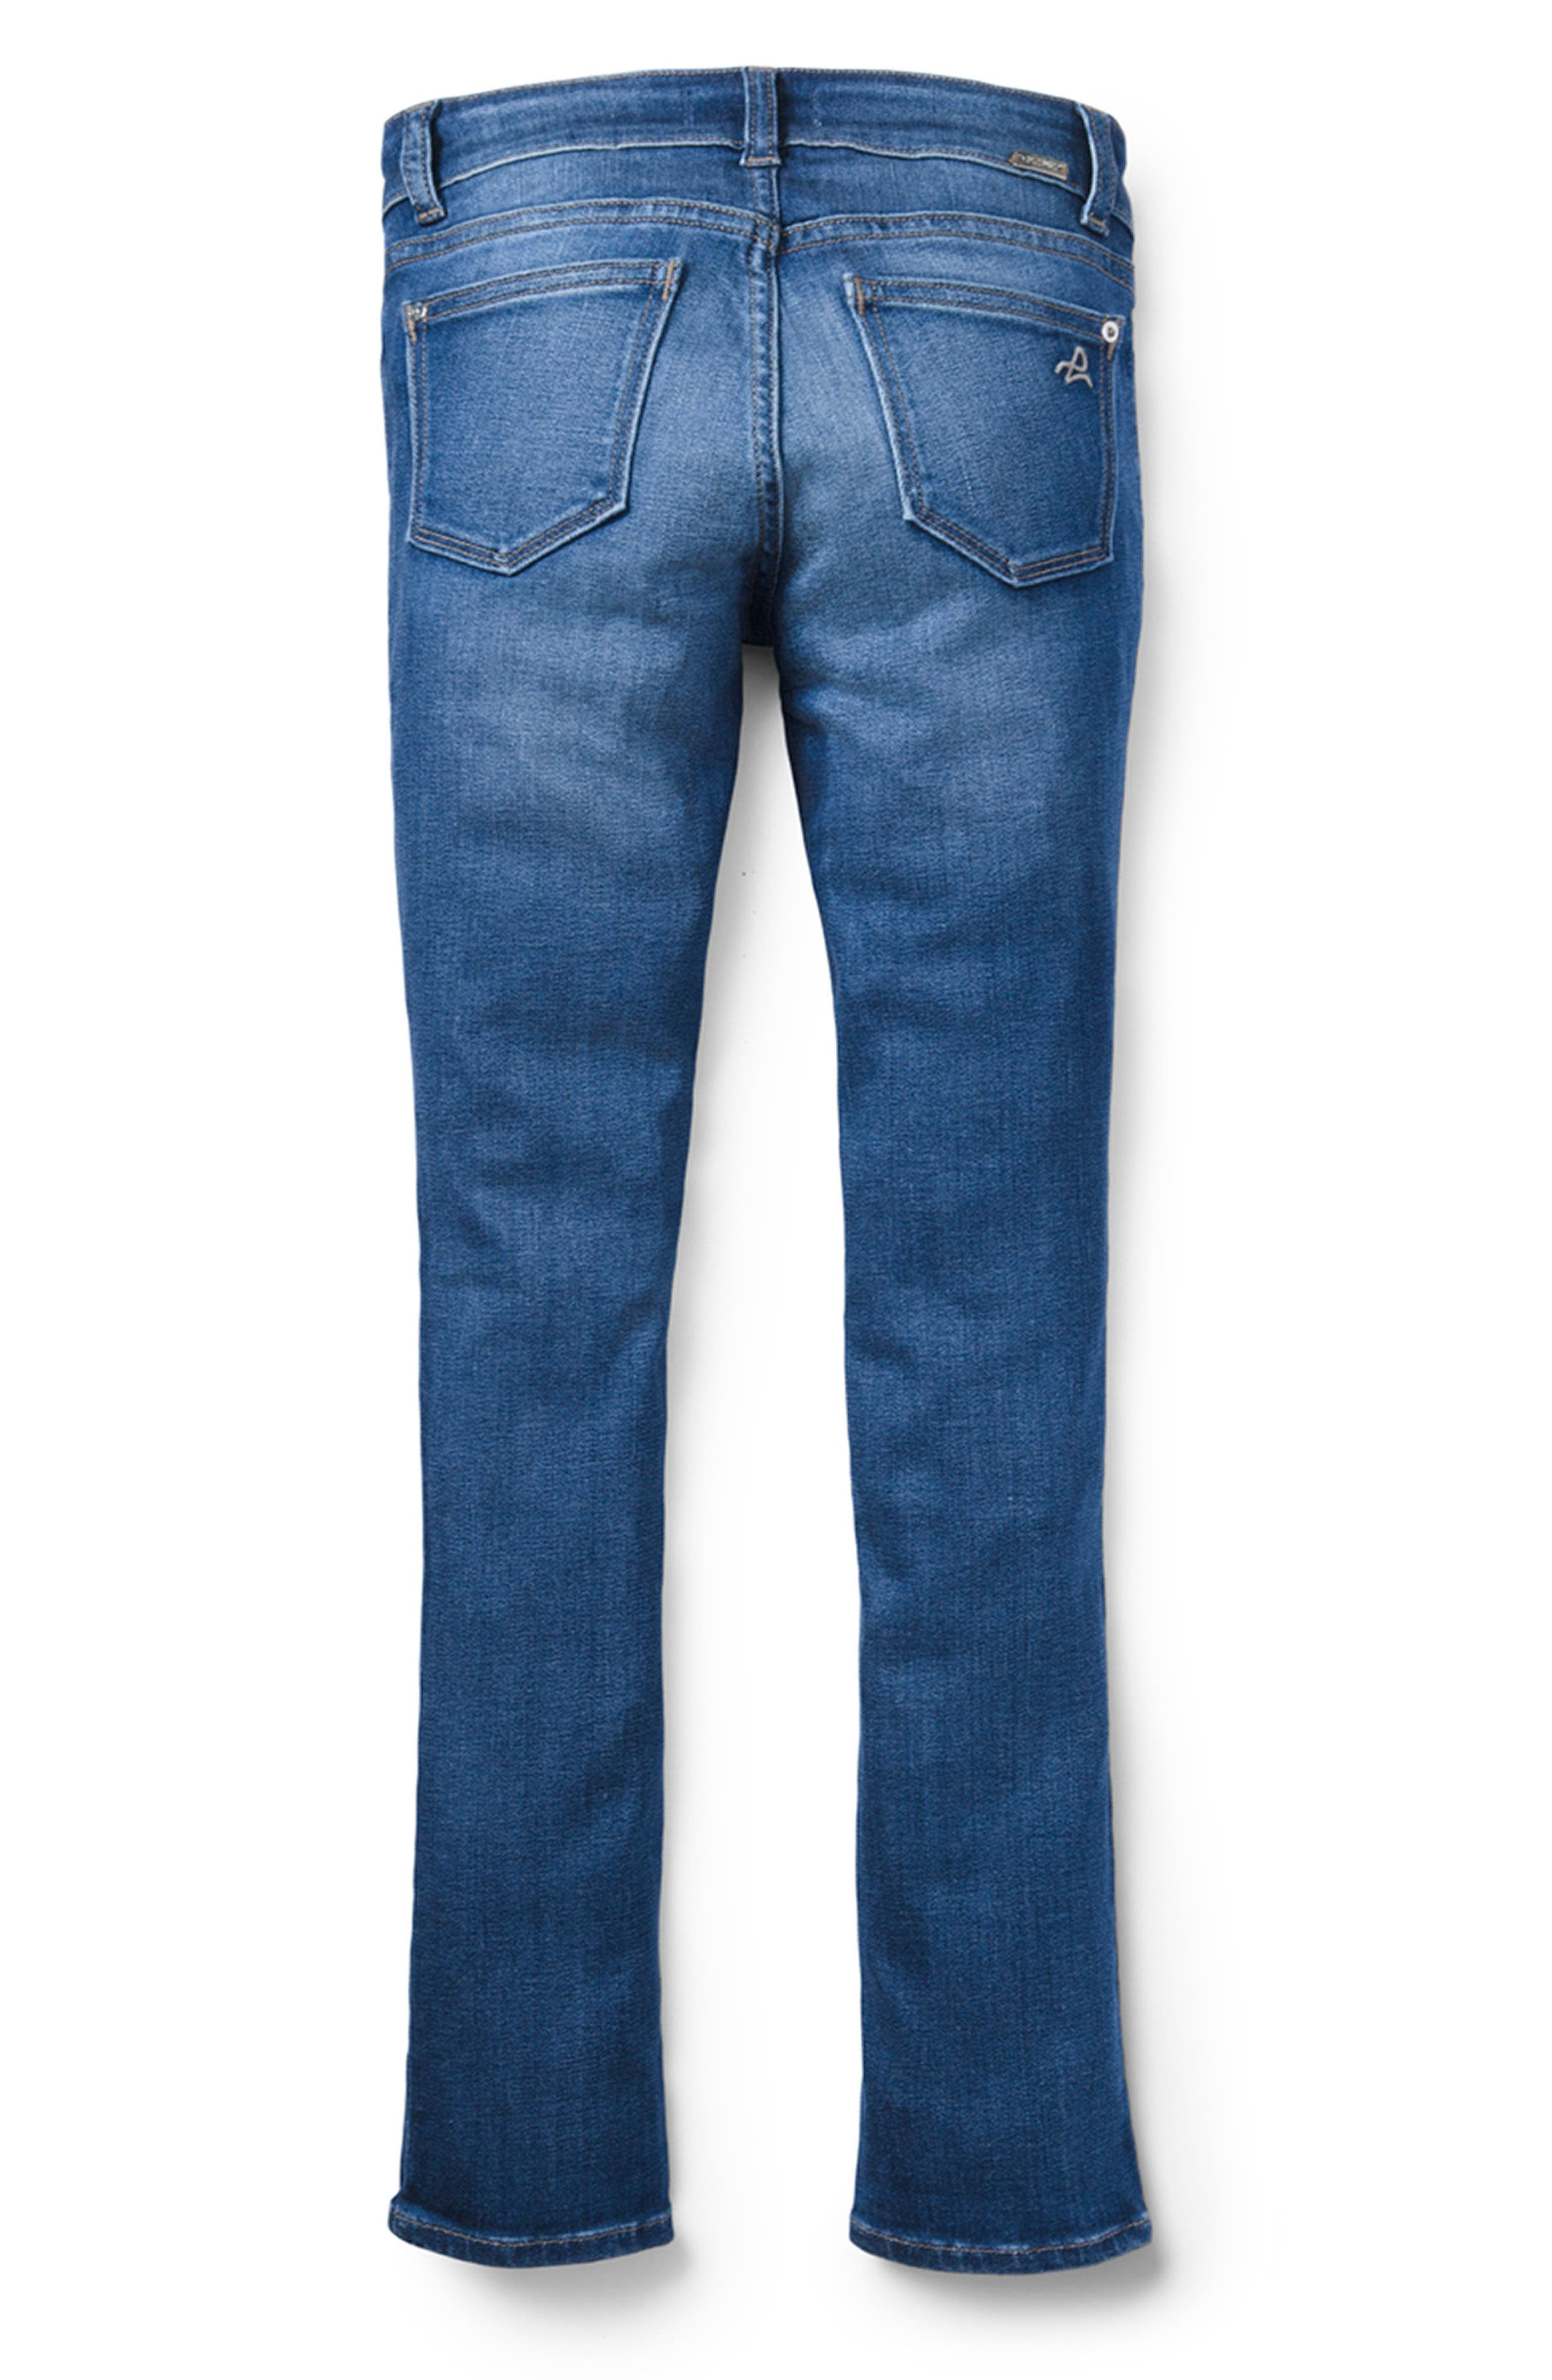 Stretch Skinny Jeans,                         Main,                         color, BLUE